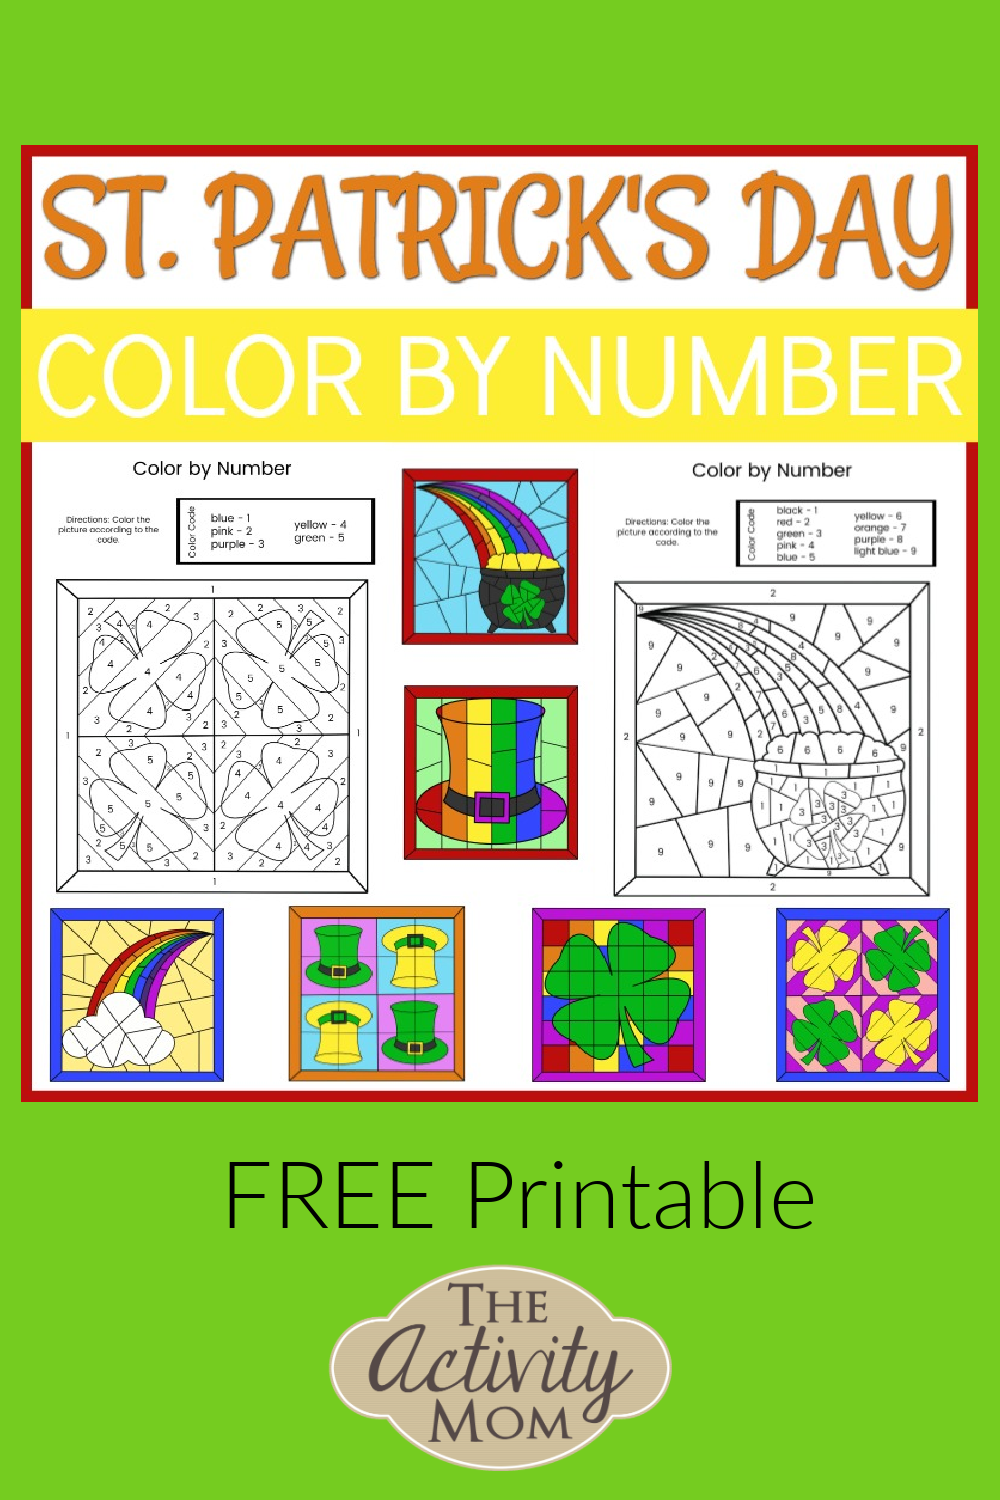 St. Patrick's Day color by number pages